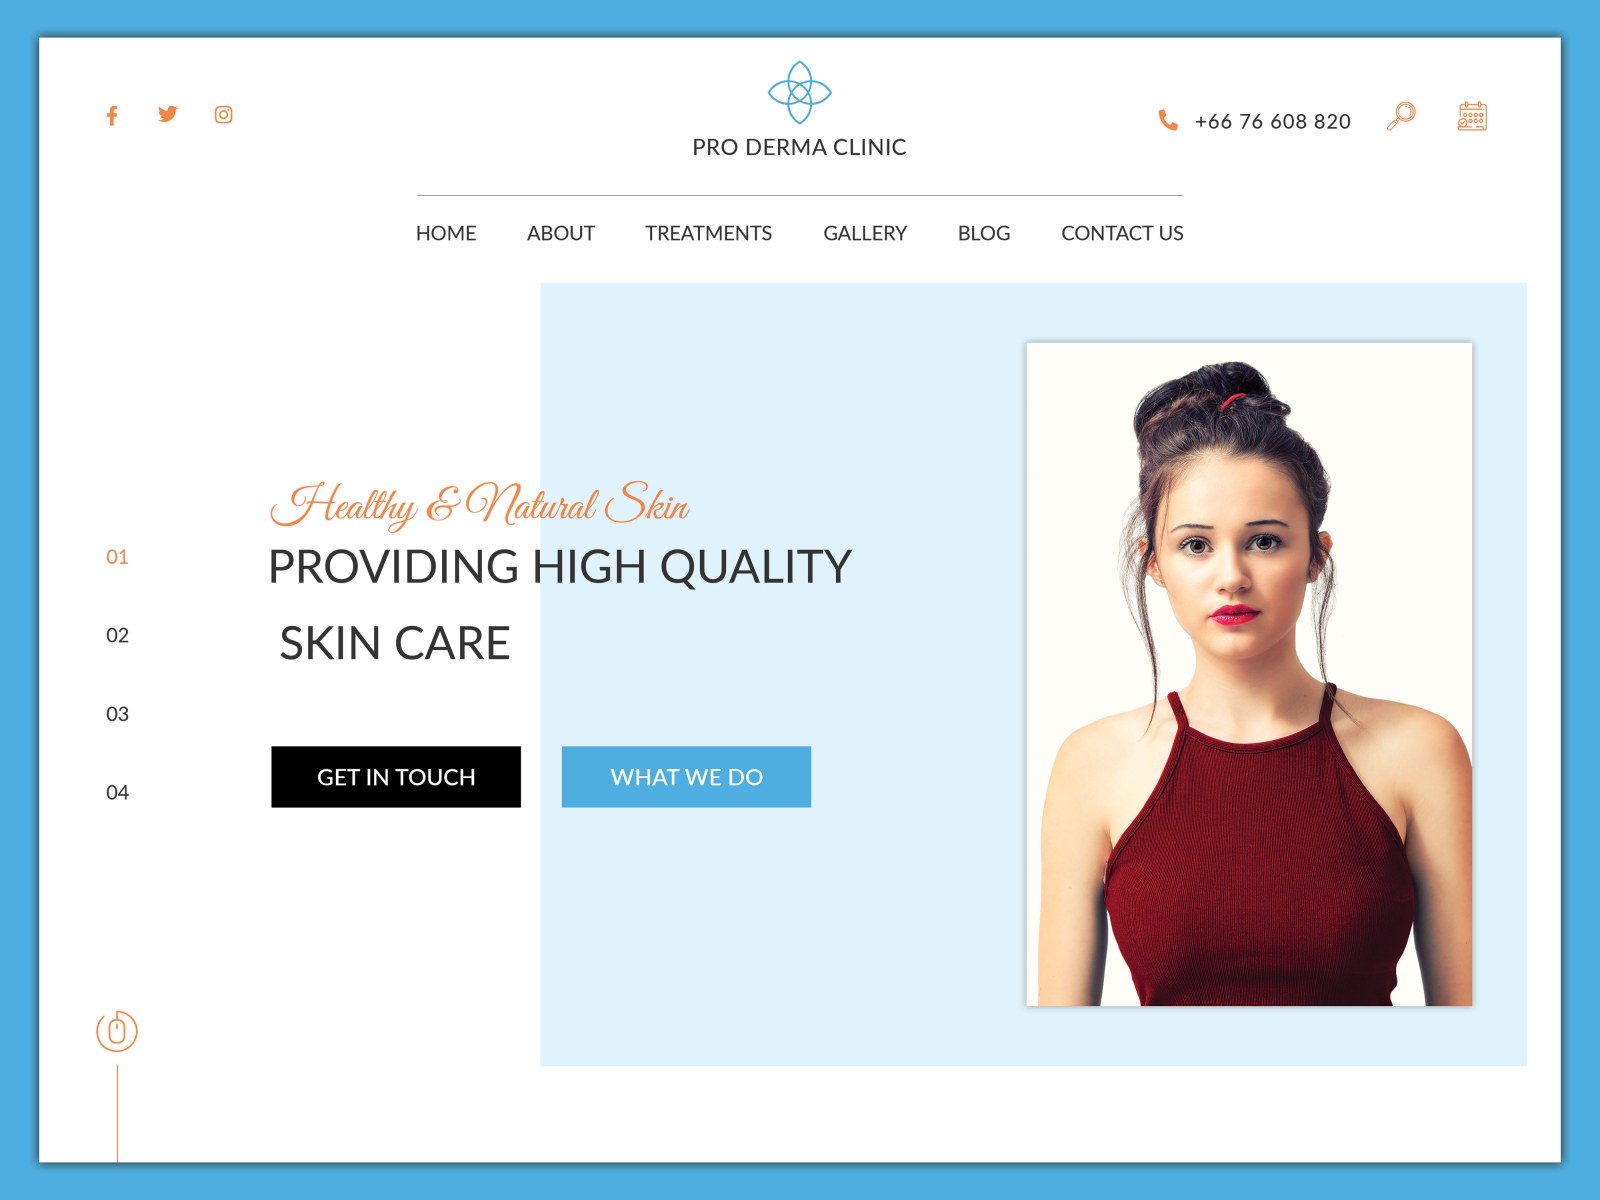 Skincare Clinic Website Banner By Ipro Design On Dribbble